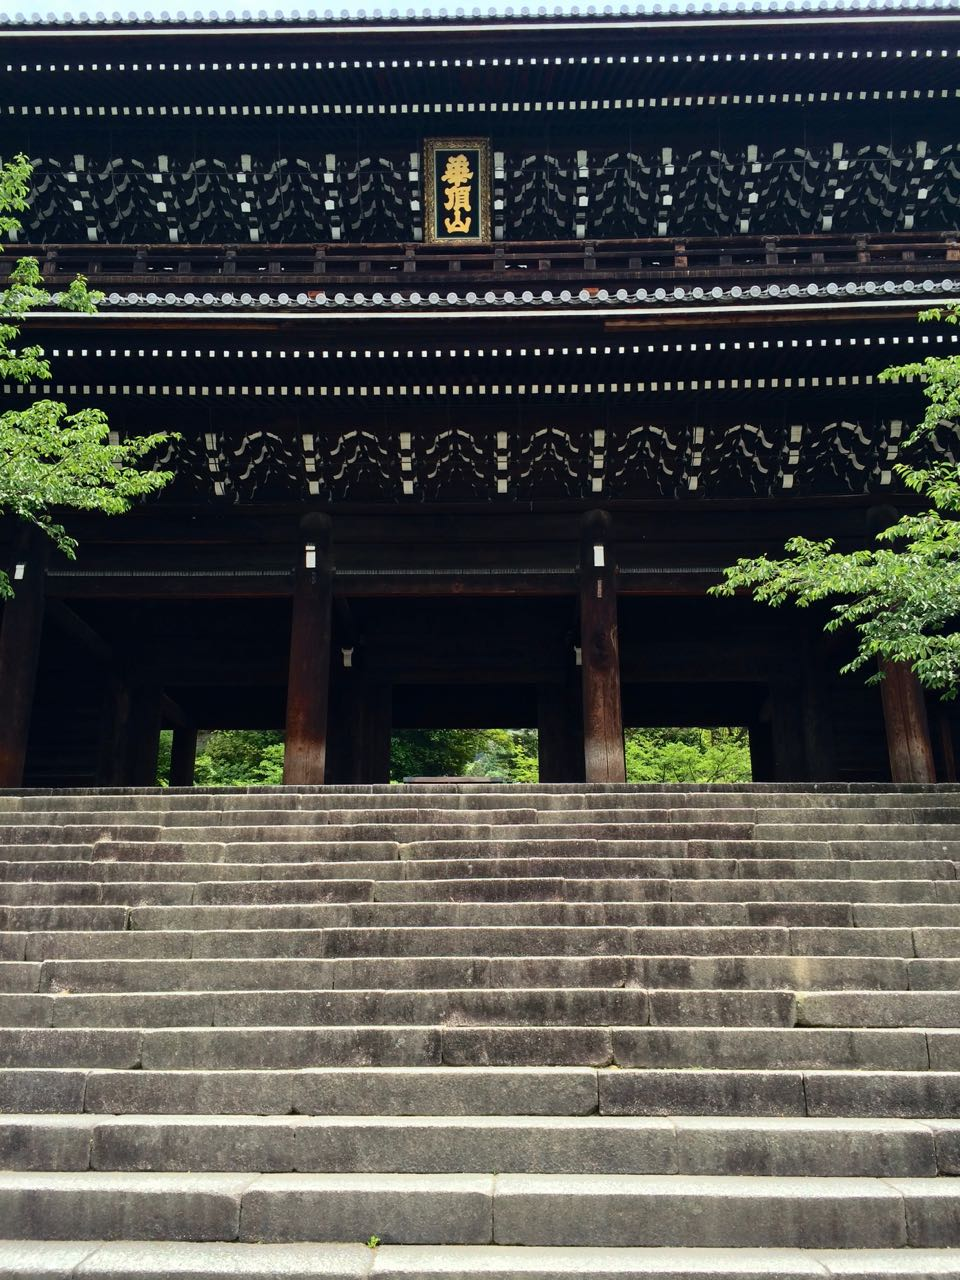 Chion-in Sanmon